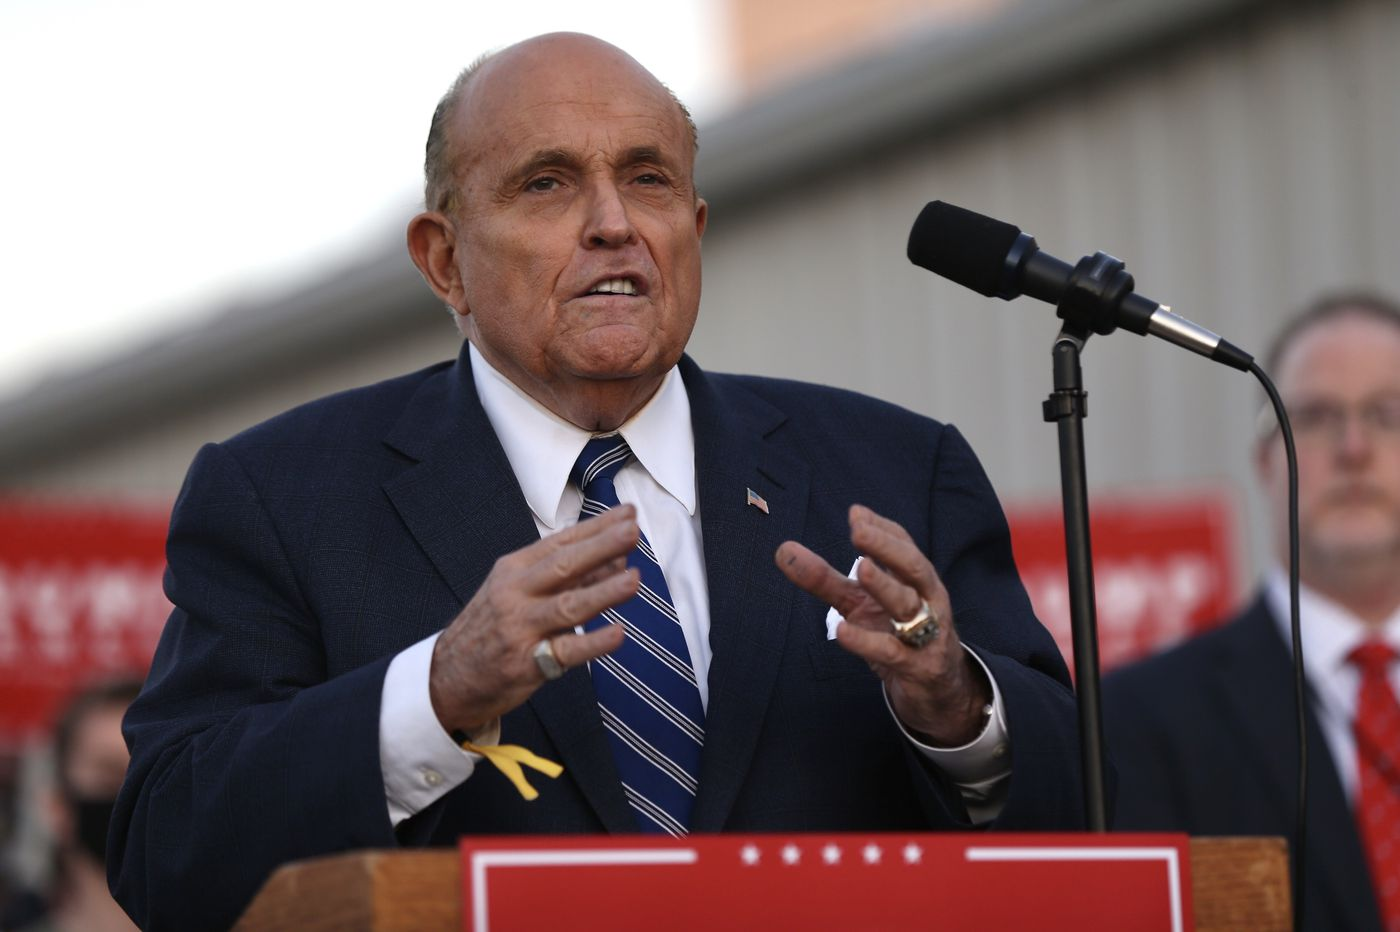 Rudy Giuliani and Trump's last-stand push to overturn Pa.'s election results get a frosty reception in court